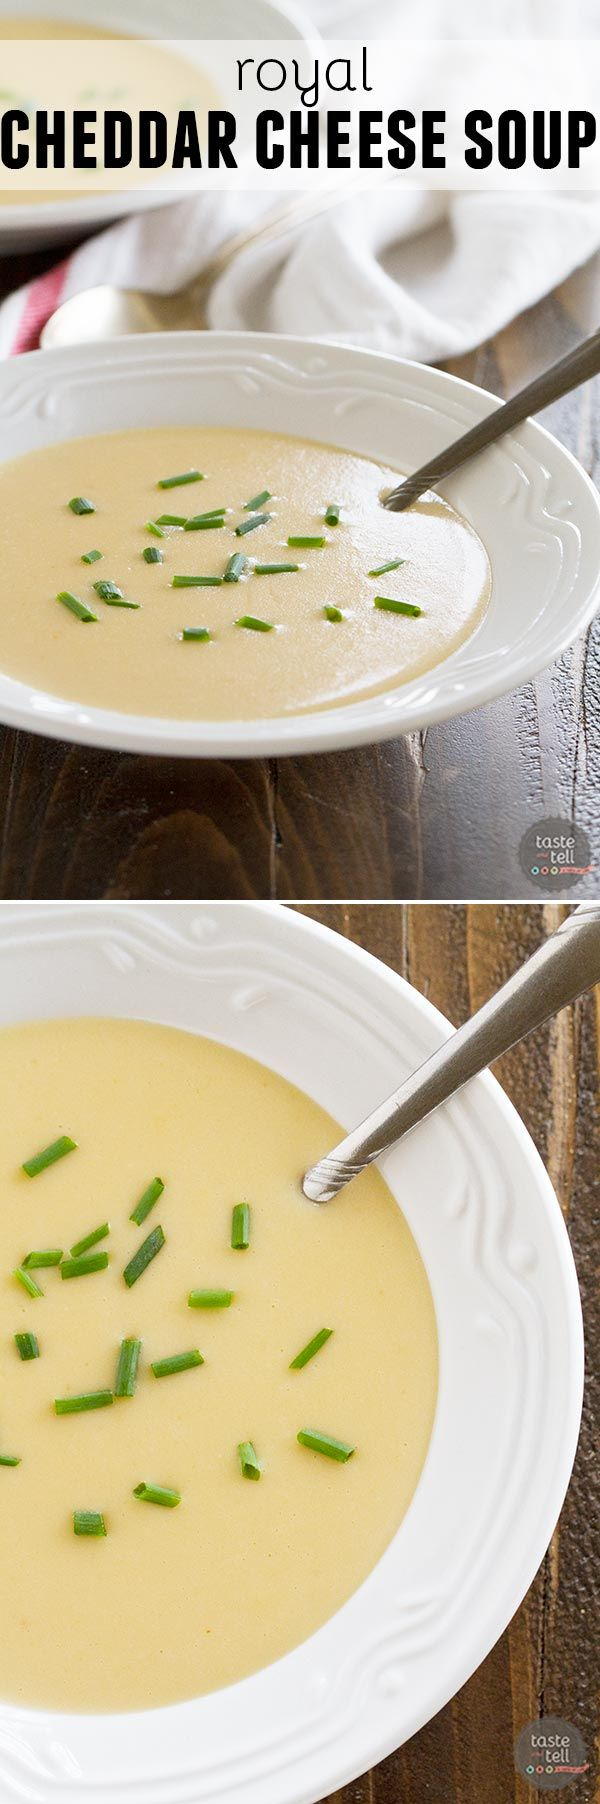 Eat like those on Downton Abbey with this silky smooth Royal Cheddar Cheese Soup. During the Edwardian era, this soup would be served whenever there were special guests present.